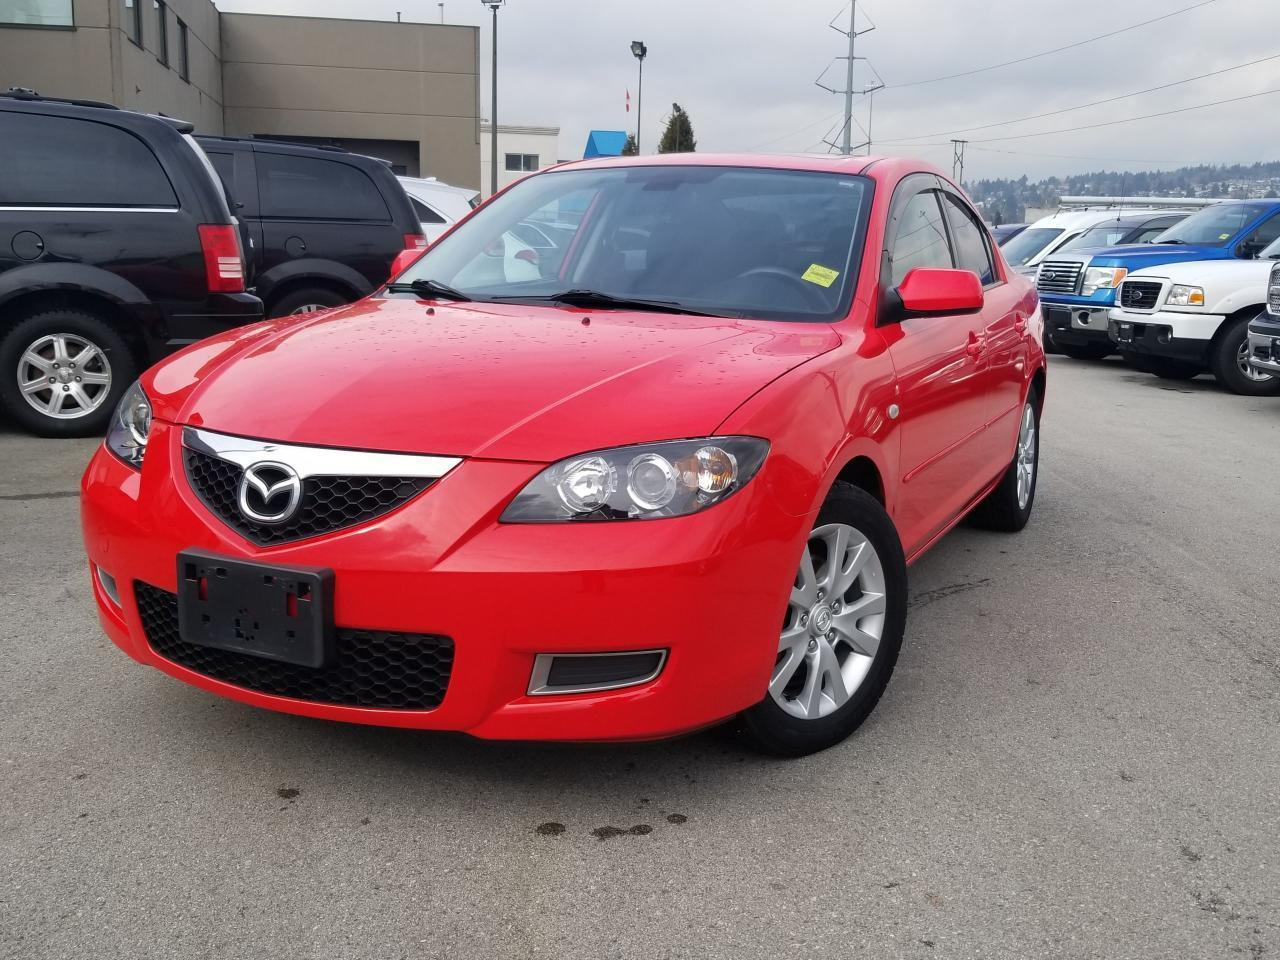 img src https images carpages ca inventory 2712715 81901495 w 1280 h 960 q 75 fit max s 4d9b5cb1a0b587b9e9d37340bce5e752 alt 2007 mazda mazda3  [ 1280 x 960 Pixel ]